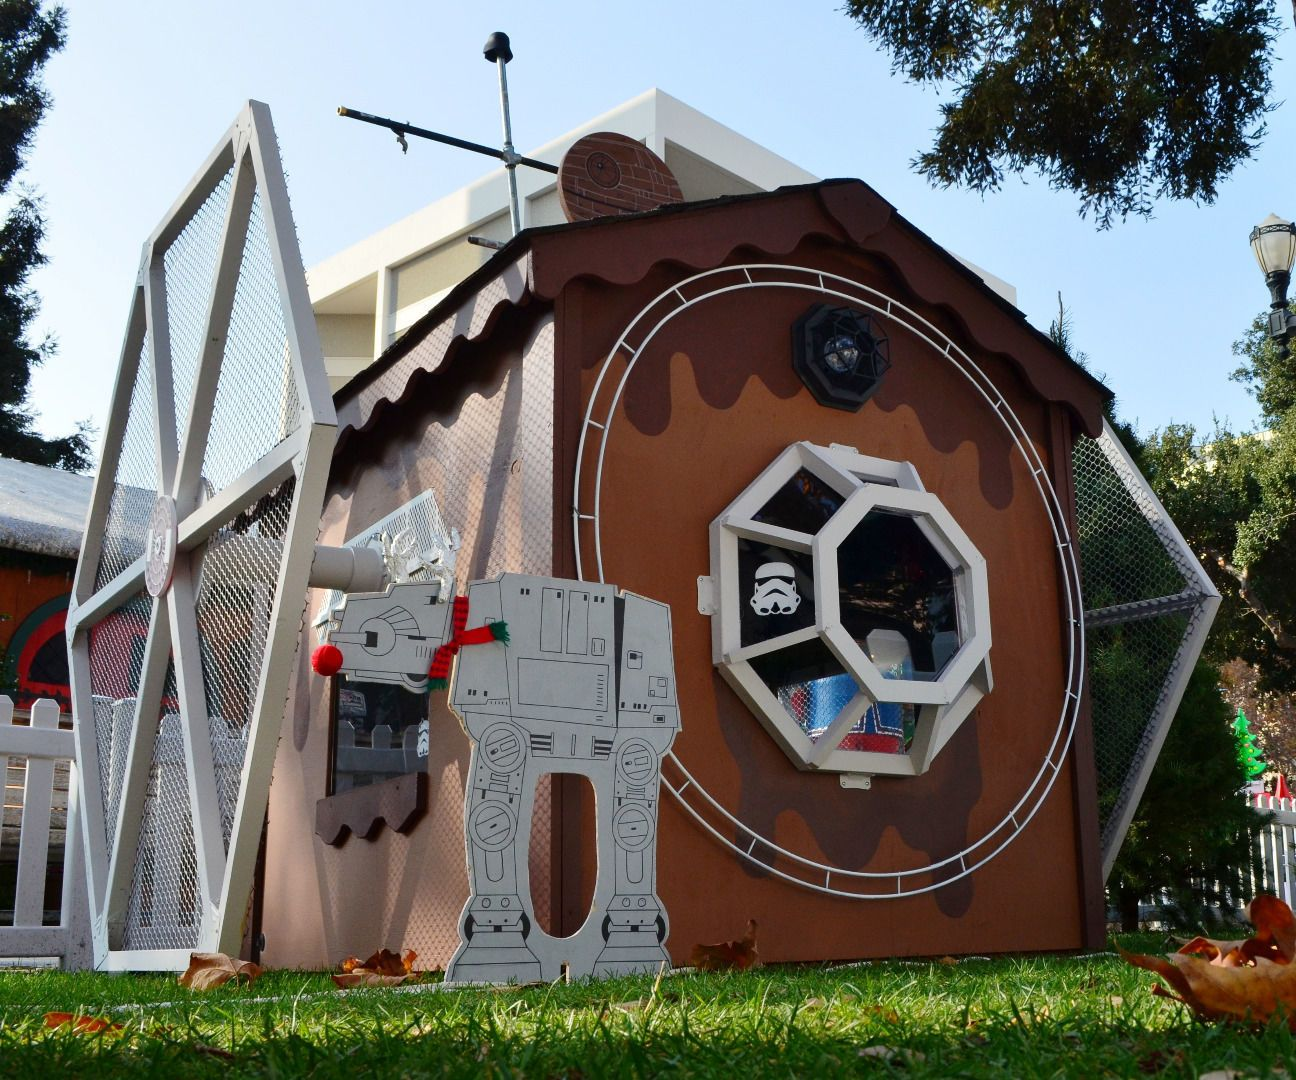 Star Wars Tie Fighter Playhouse Play Houses Diy Playhouse Plans Diy Playhouse